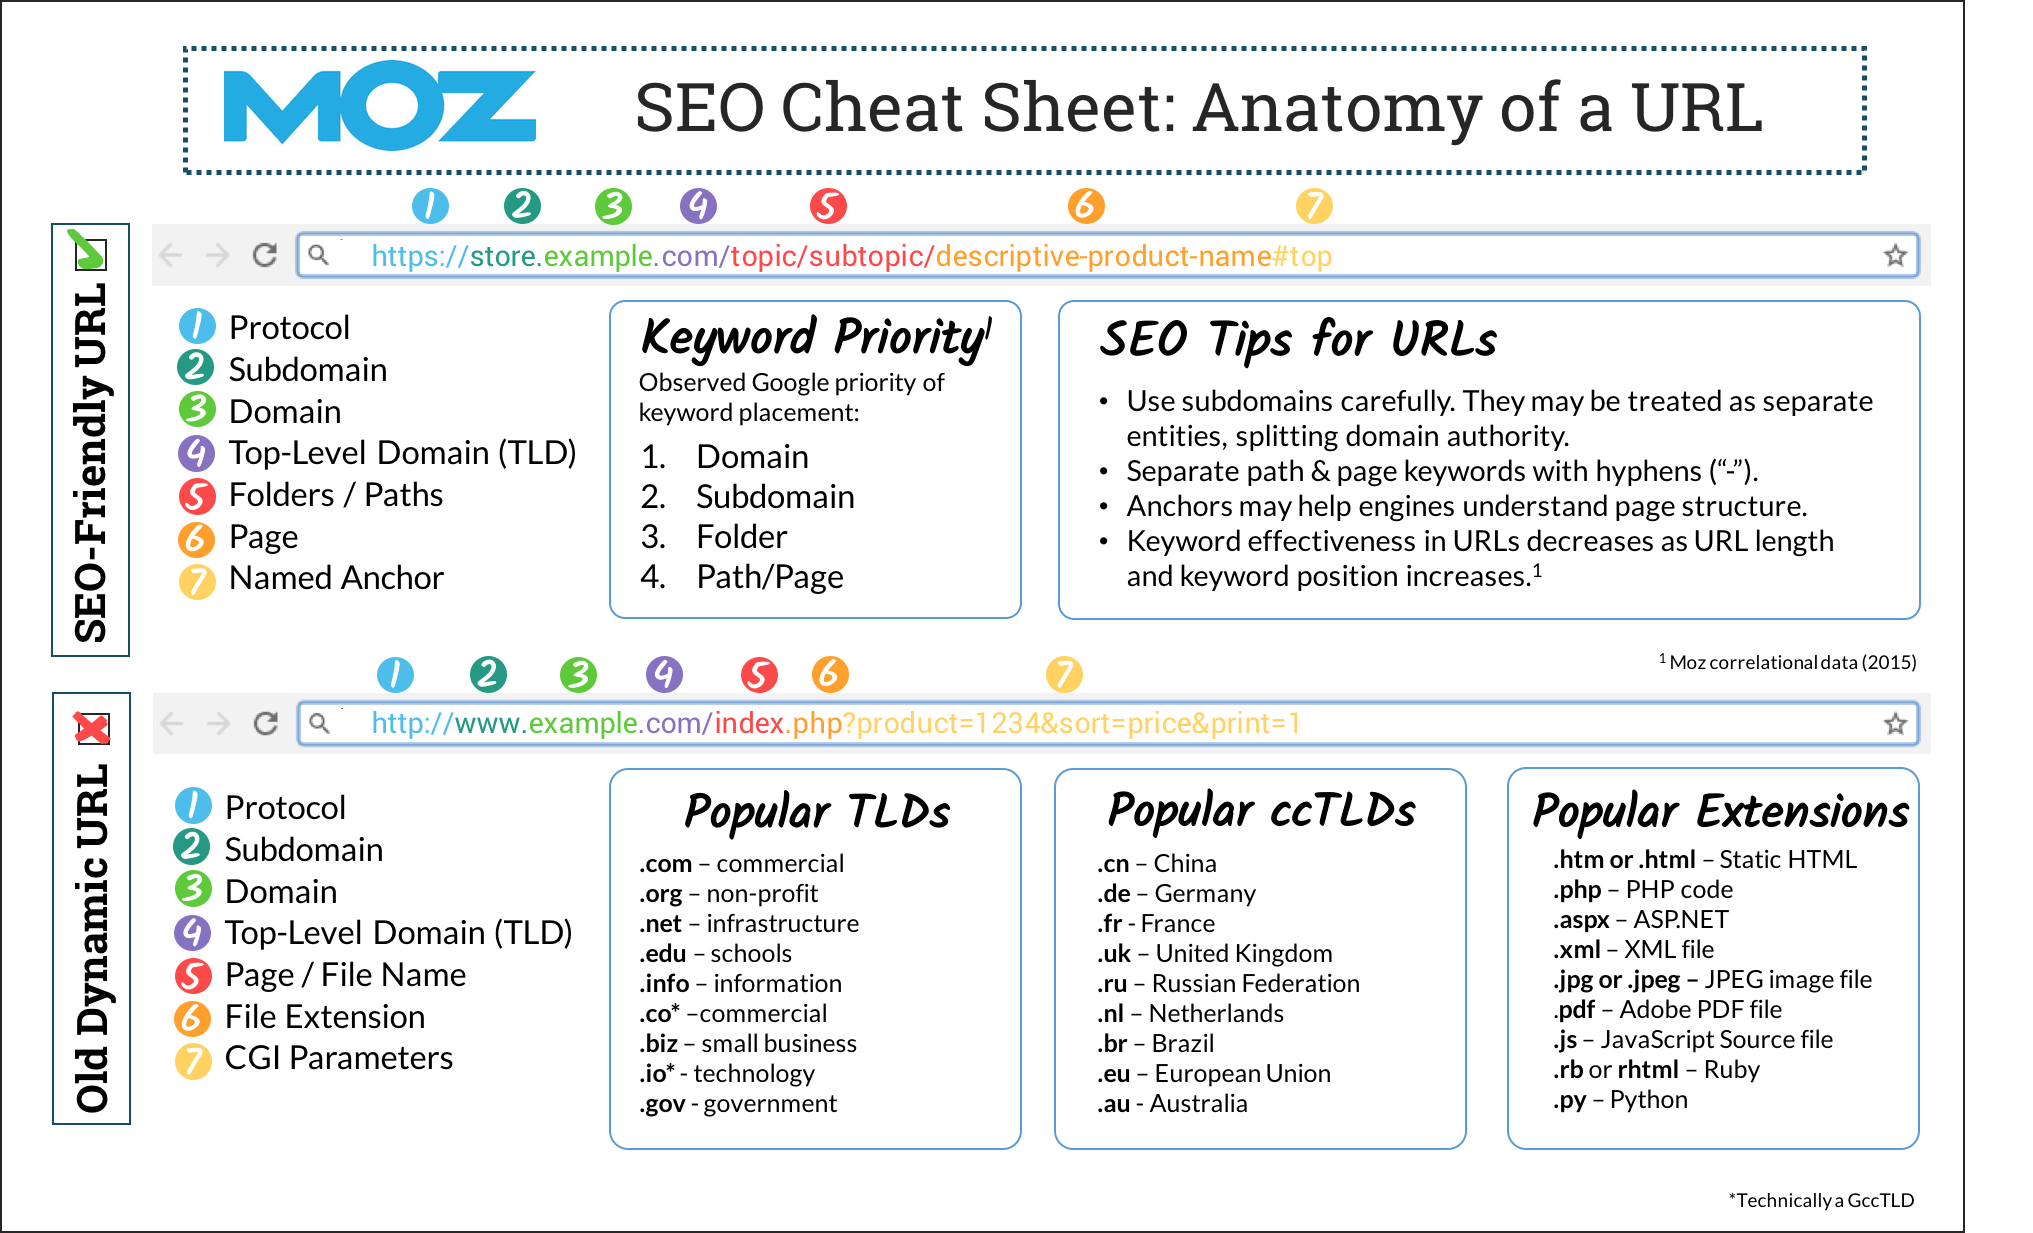 URL Structure | 2019 SEO Best Practices - Moz